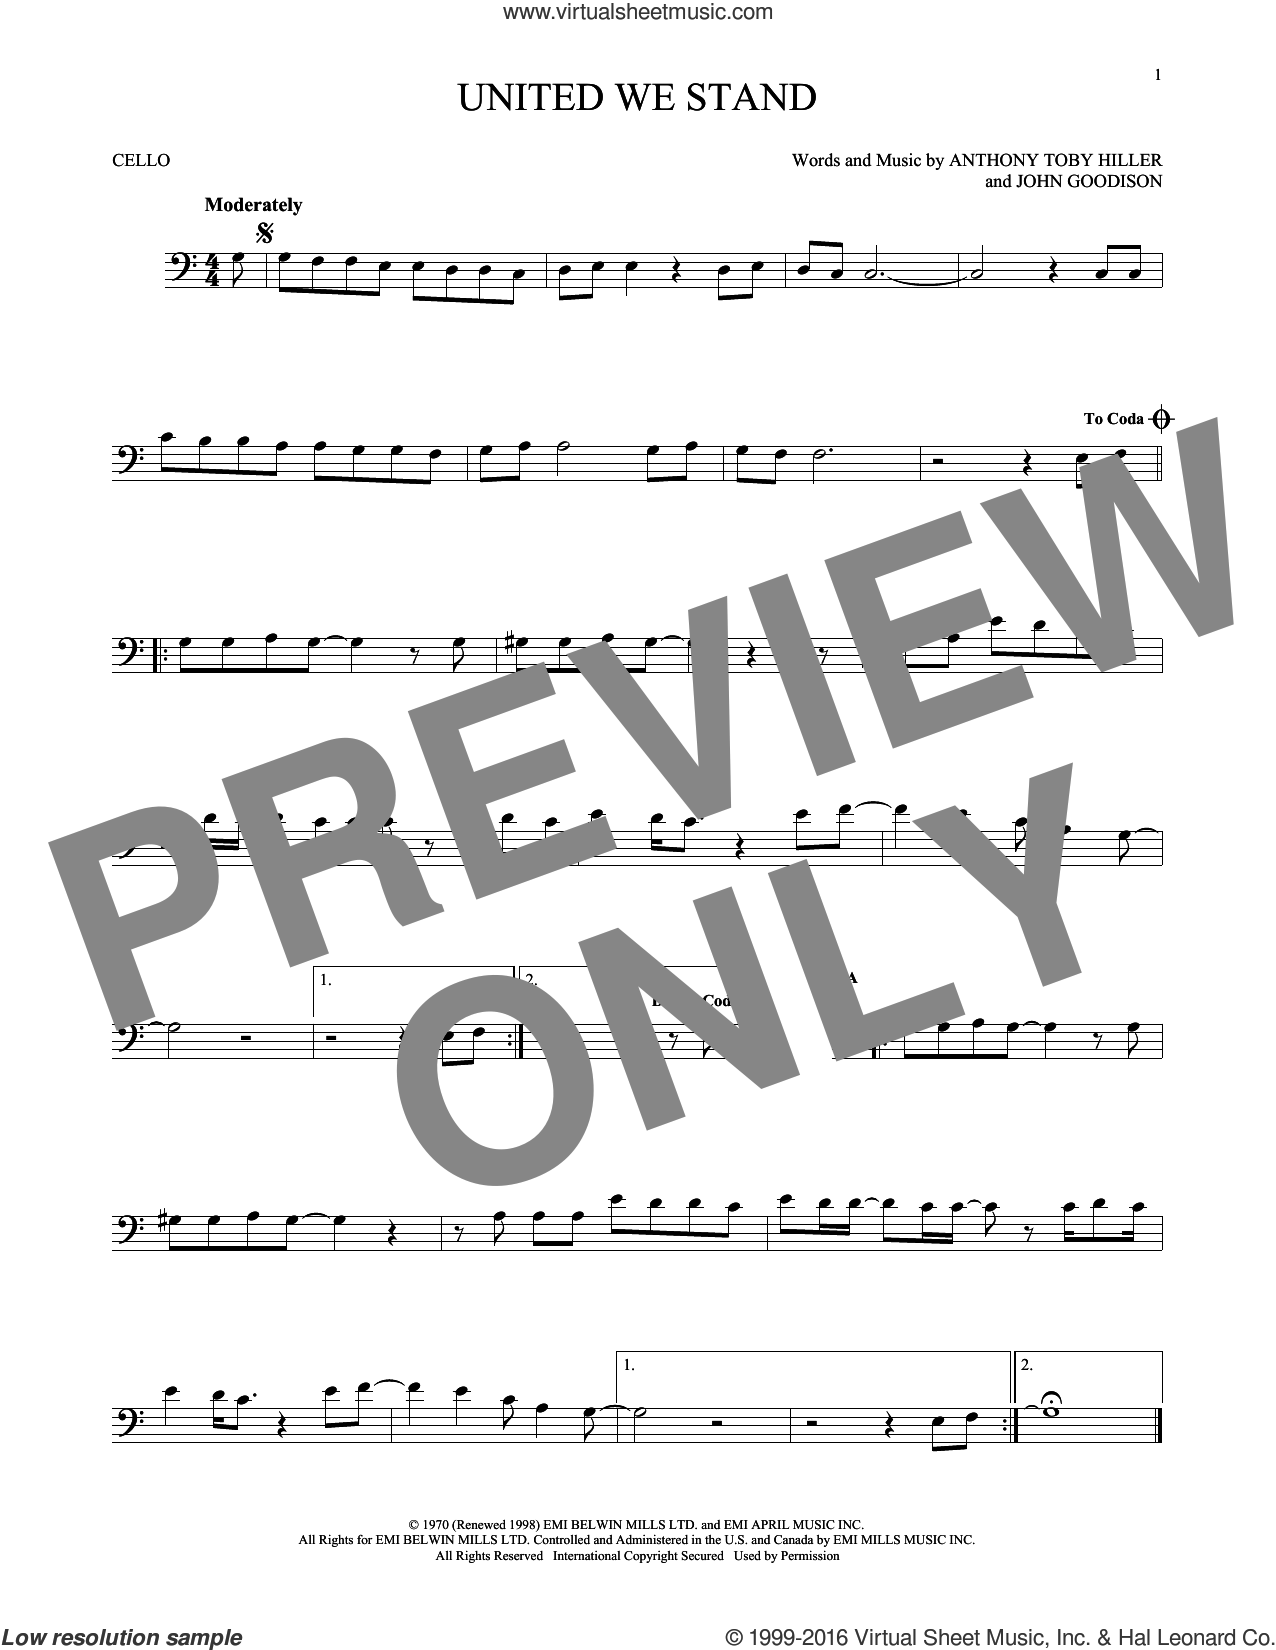 United We Stand sheet music for cello solo by Brotherhood Of Man, Peter Simons and Toby Hiller, intermediate skill level